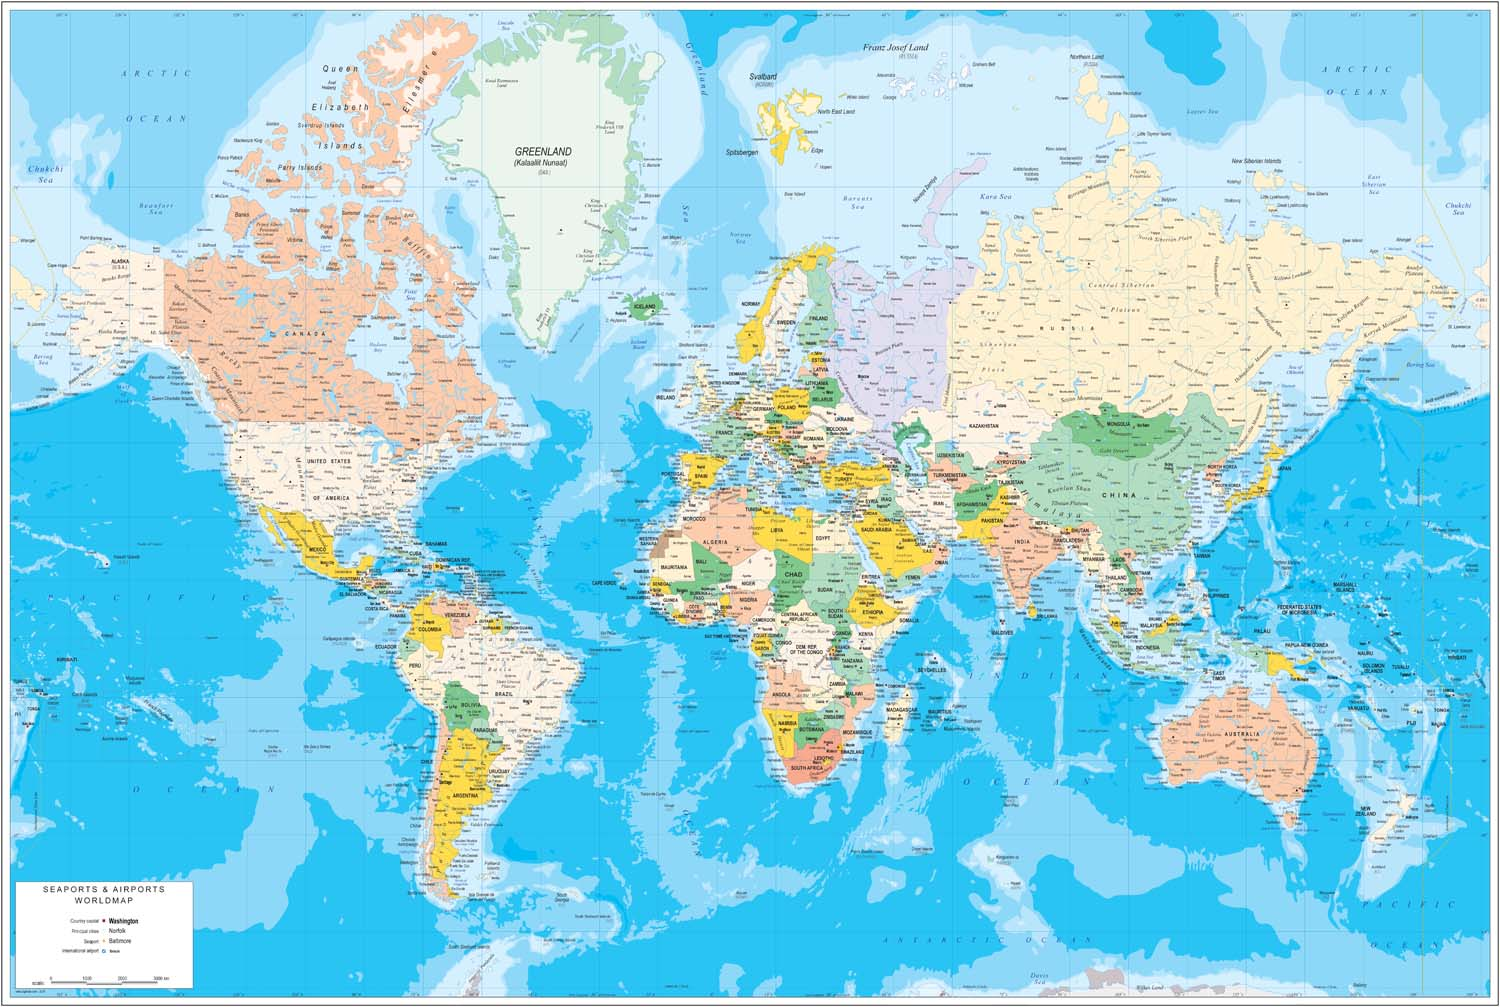 Vectorized maps digital maps increase search engine traffic physical political worldmap with sea ports and airports enlarge view gumiabroncs Image collections